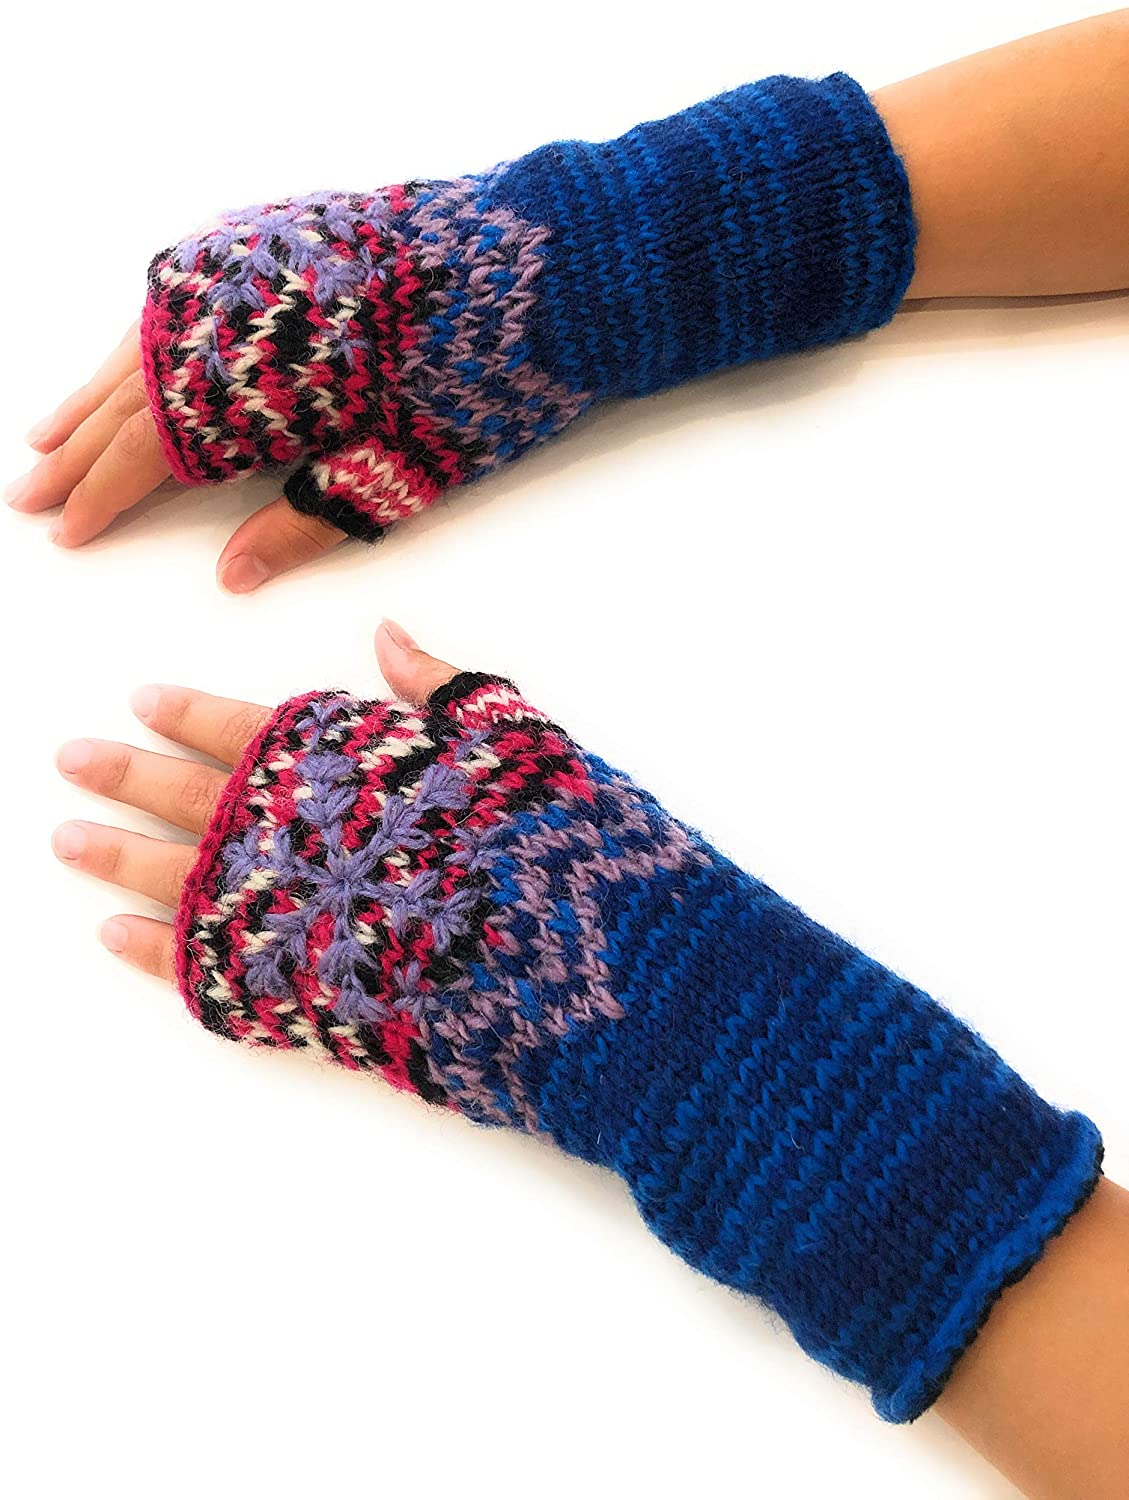 Snowflake Fair Isle Insulated Lined Cable Knit Arm Warmer Fingerless Gloves